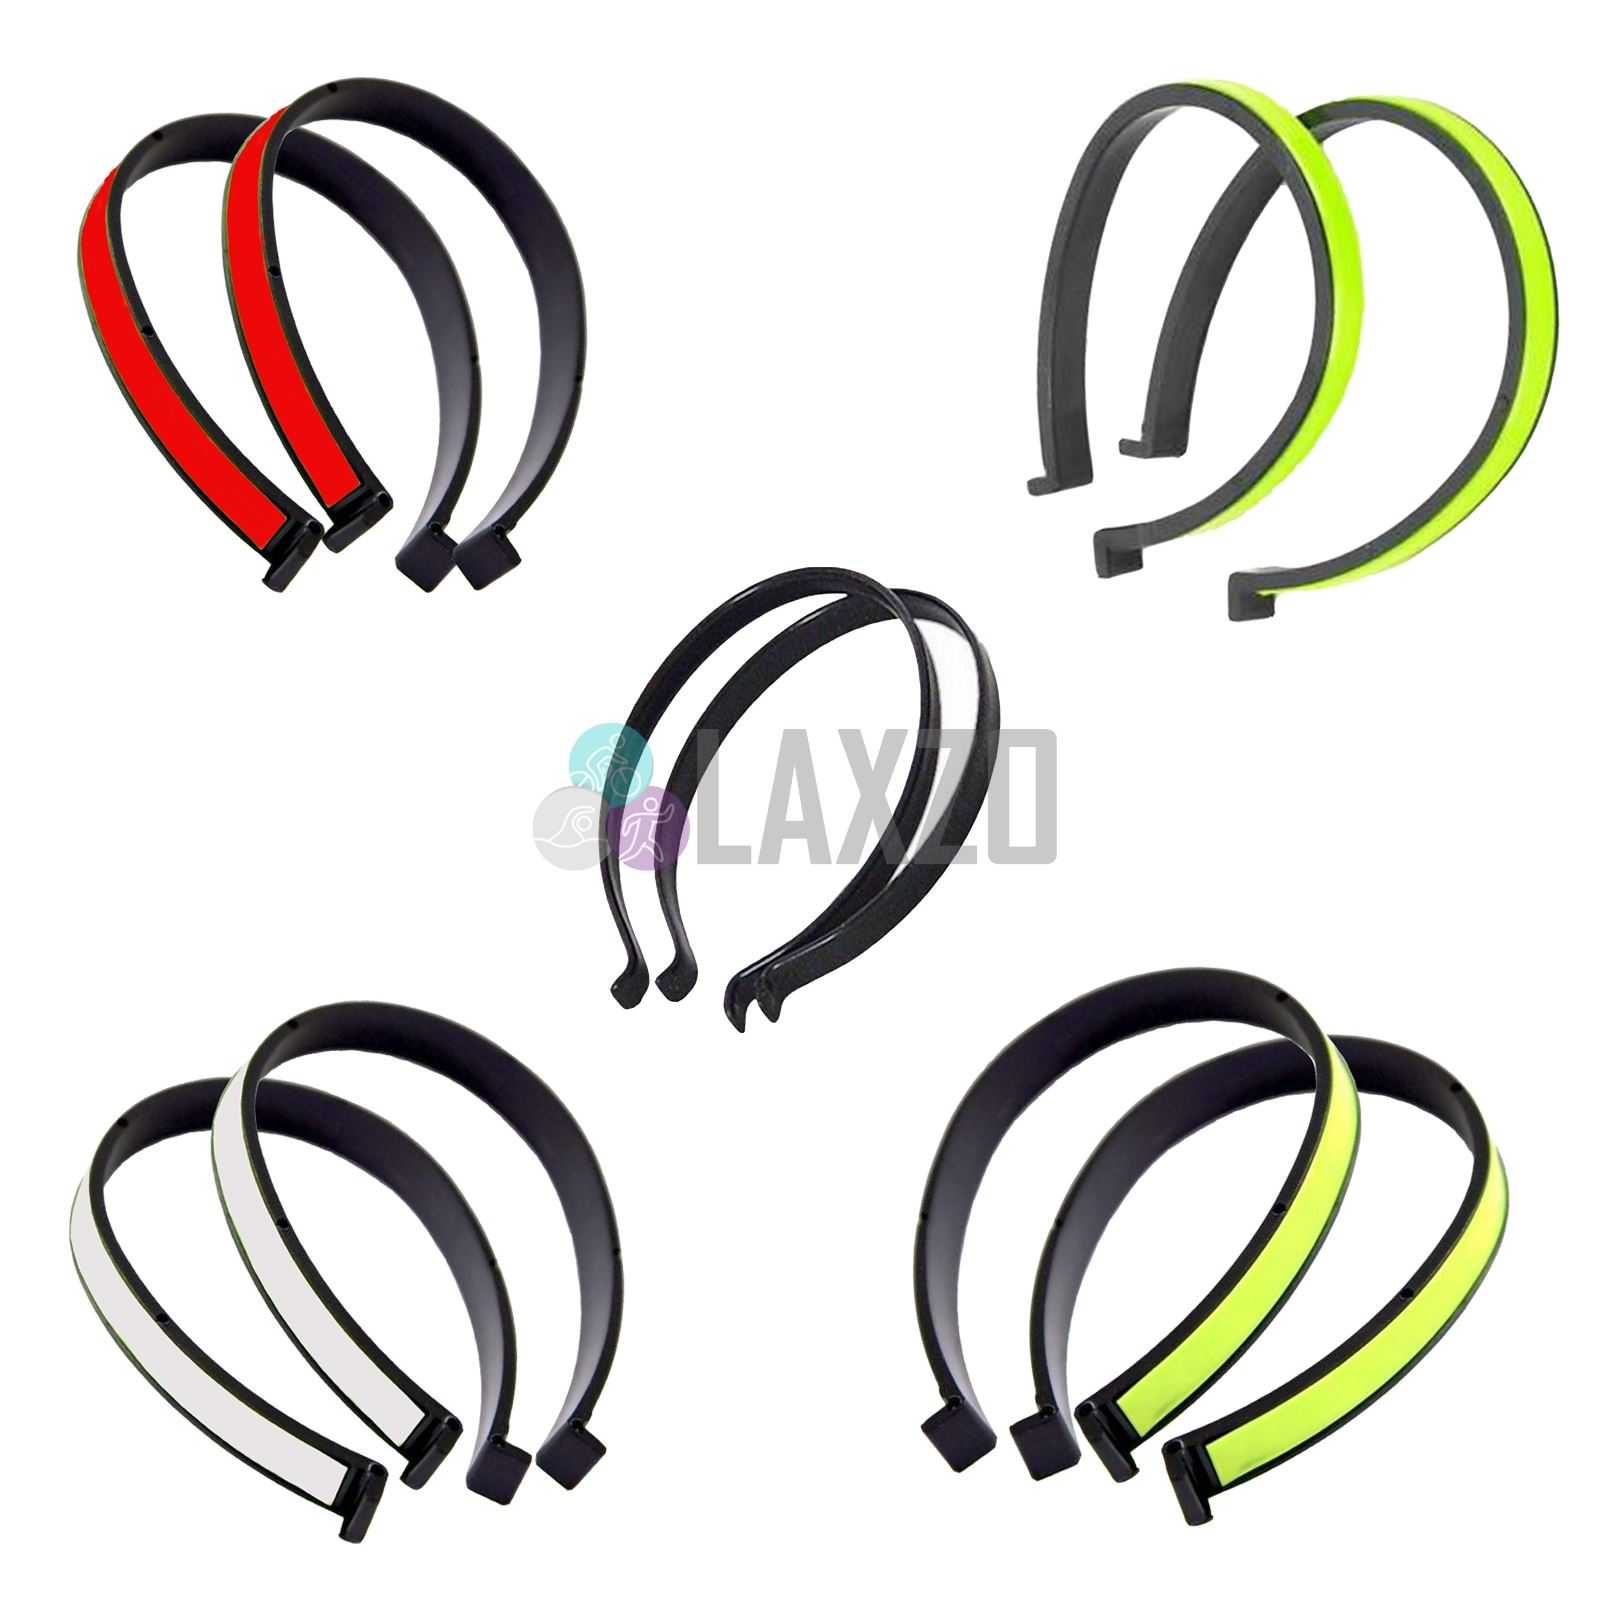 Details About Bicycle Reflective Hi Vis Cycling Trouser Clips Holder Safety 1 Pair